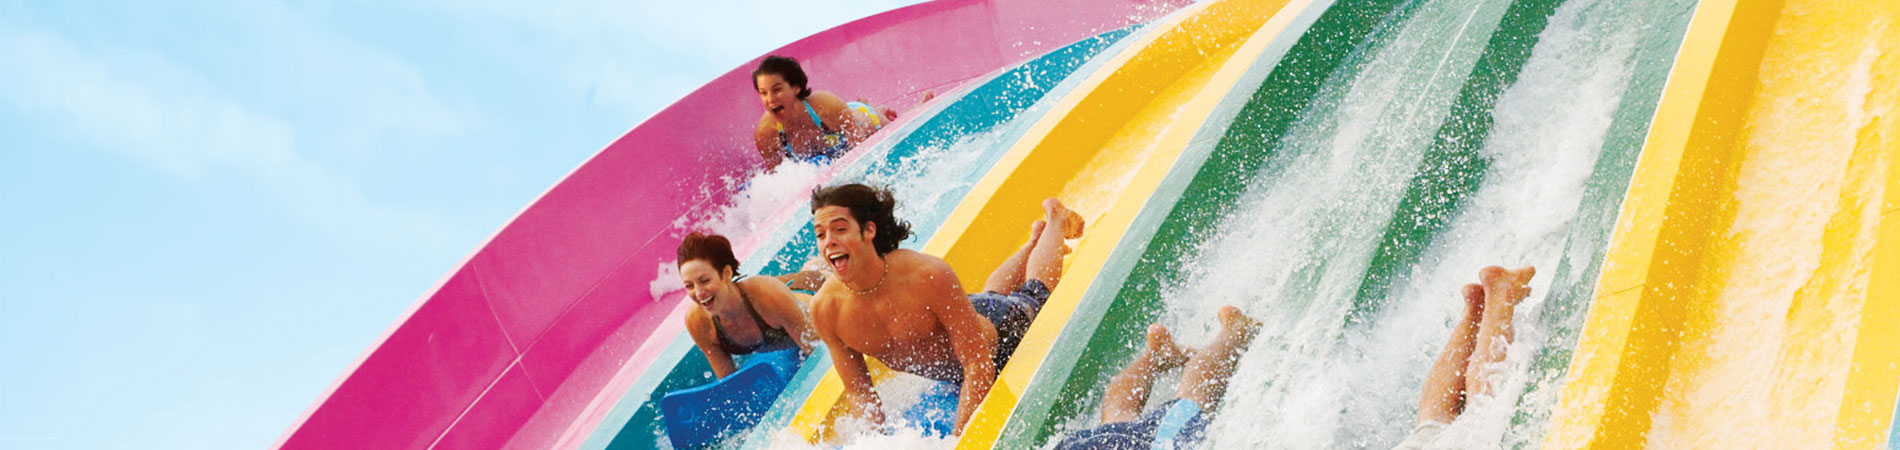 Race your friends on the thrilling Taumata Racer at Aquatica.